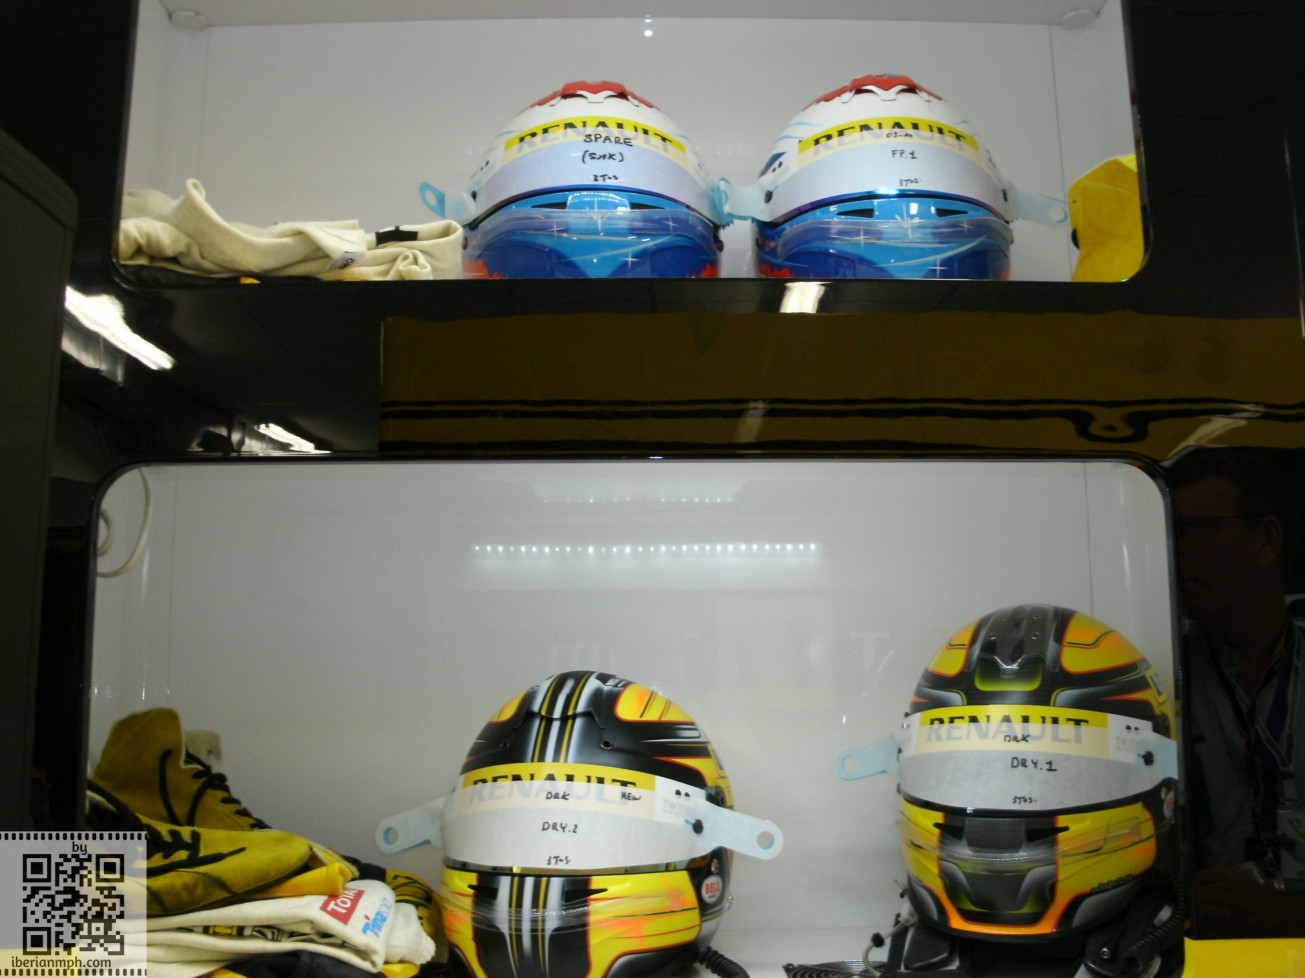 2010 with Renault F1